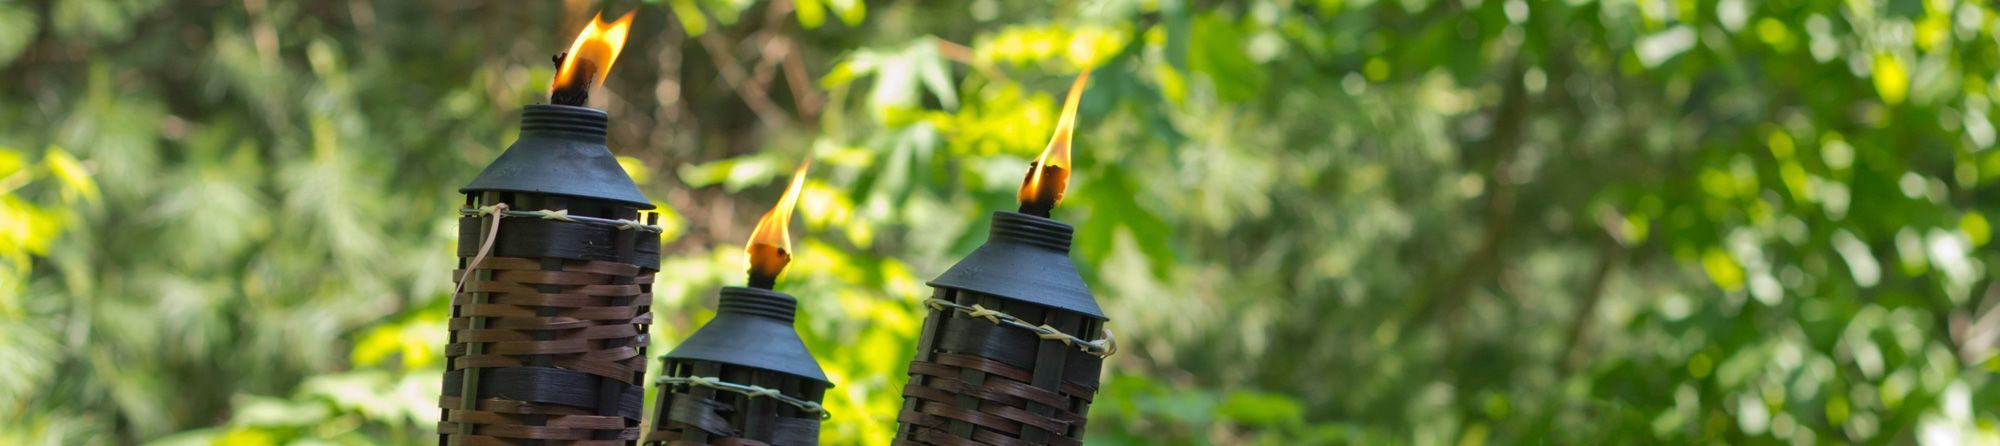 3 tiki torches to get rid of mosquitoes and bugs